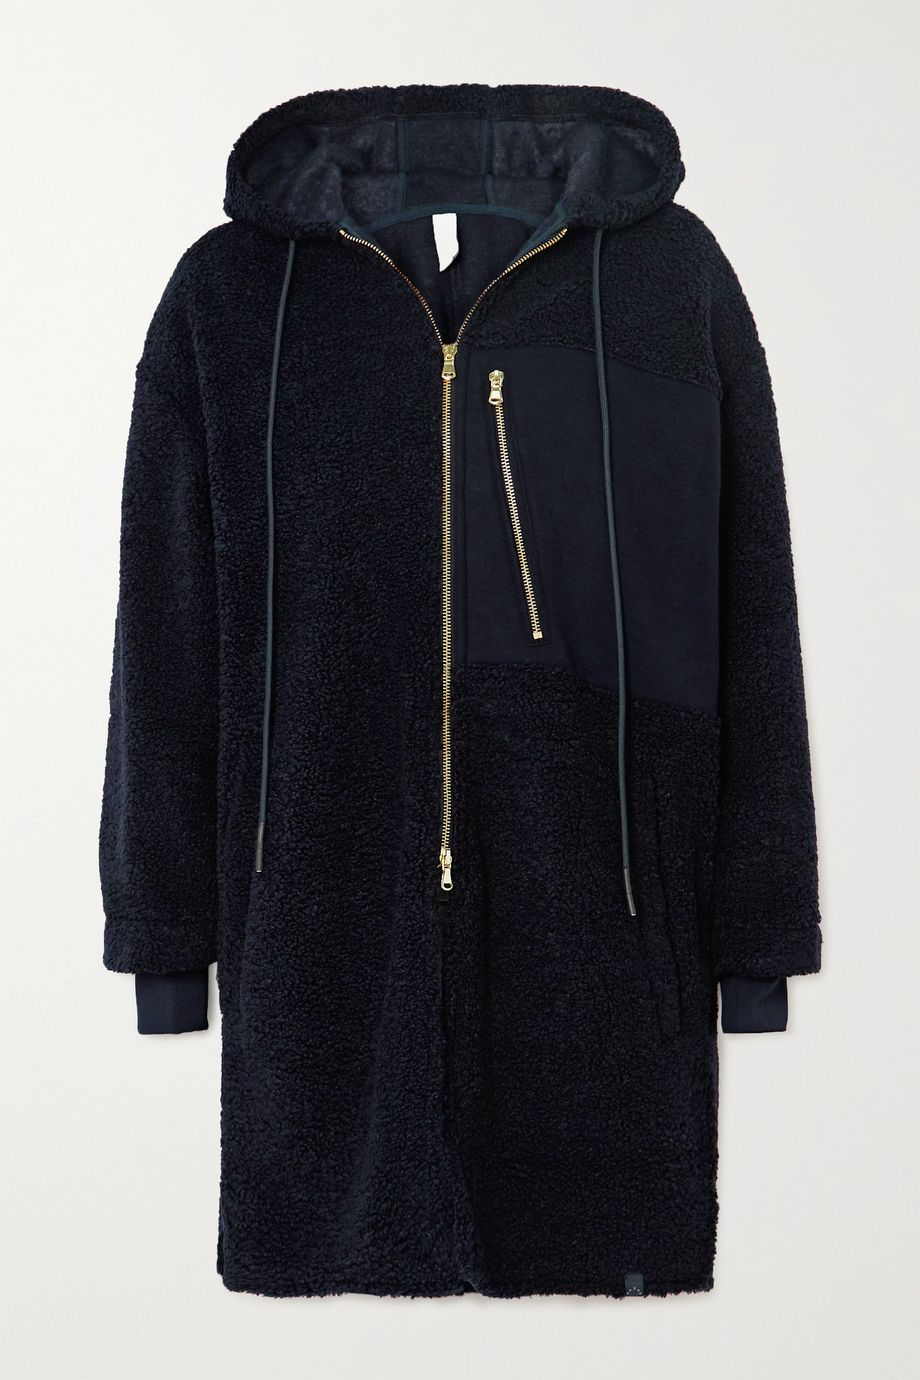 Varley Olympus oversized hooded jersey-paneled faux shearling coat